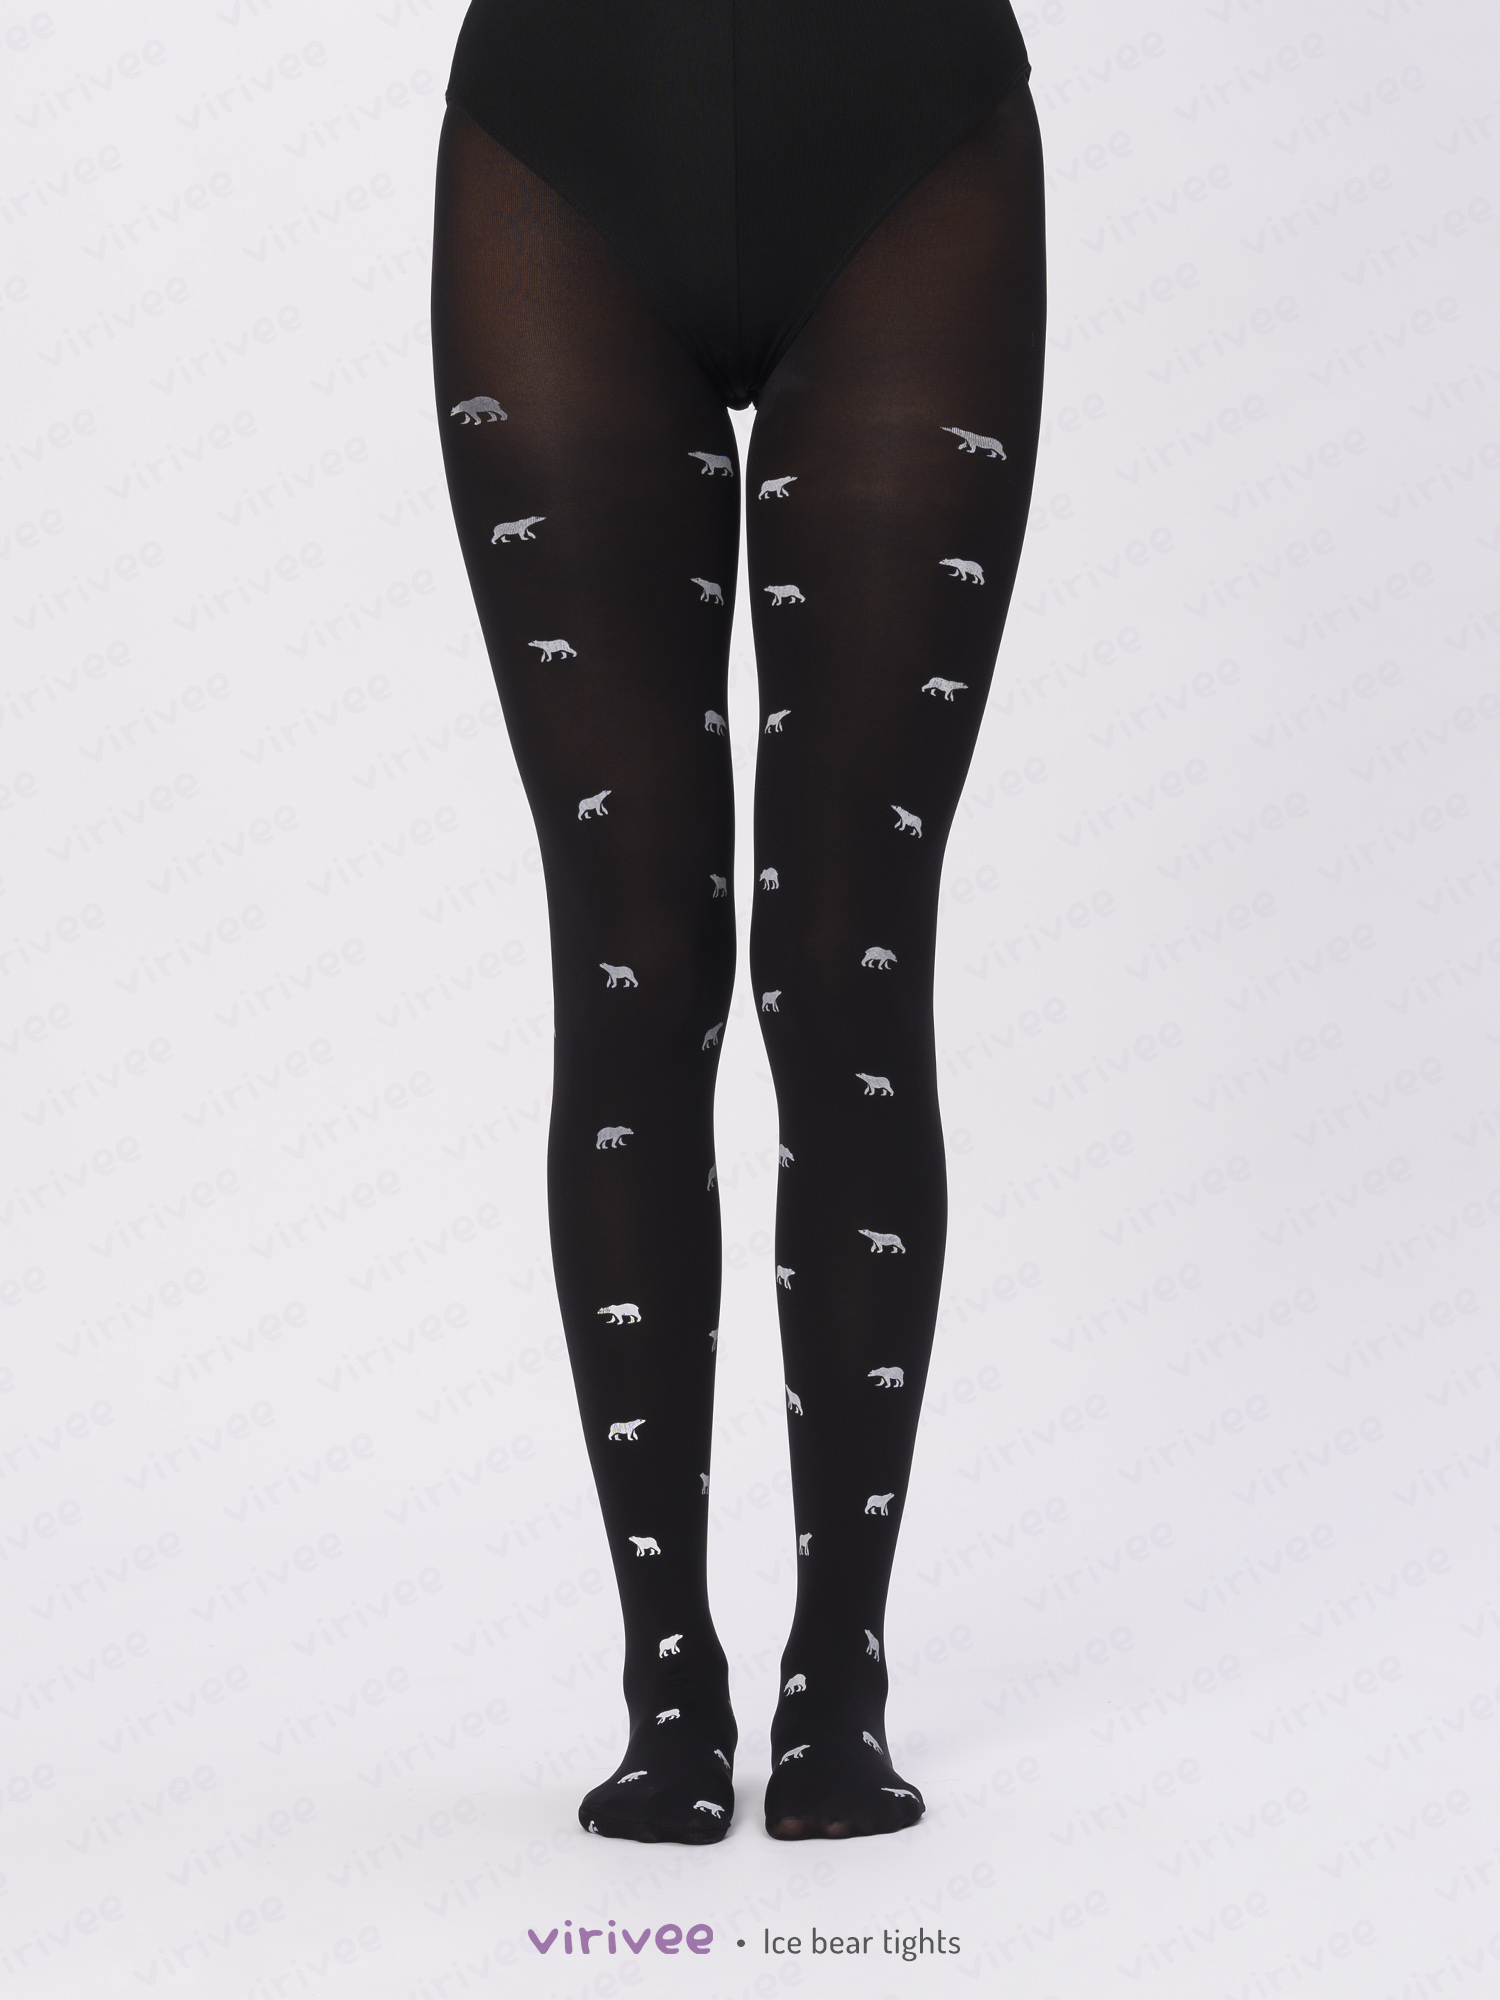 Ice bear patterned tights